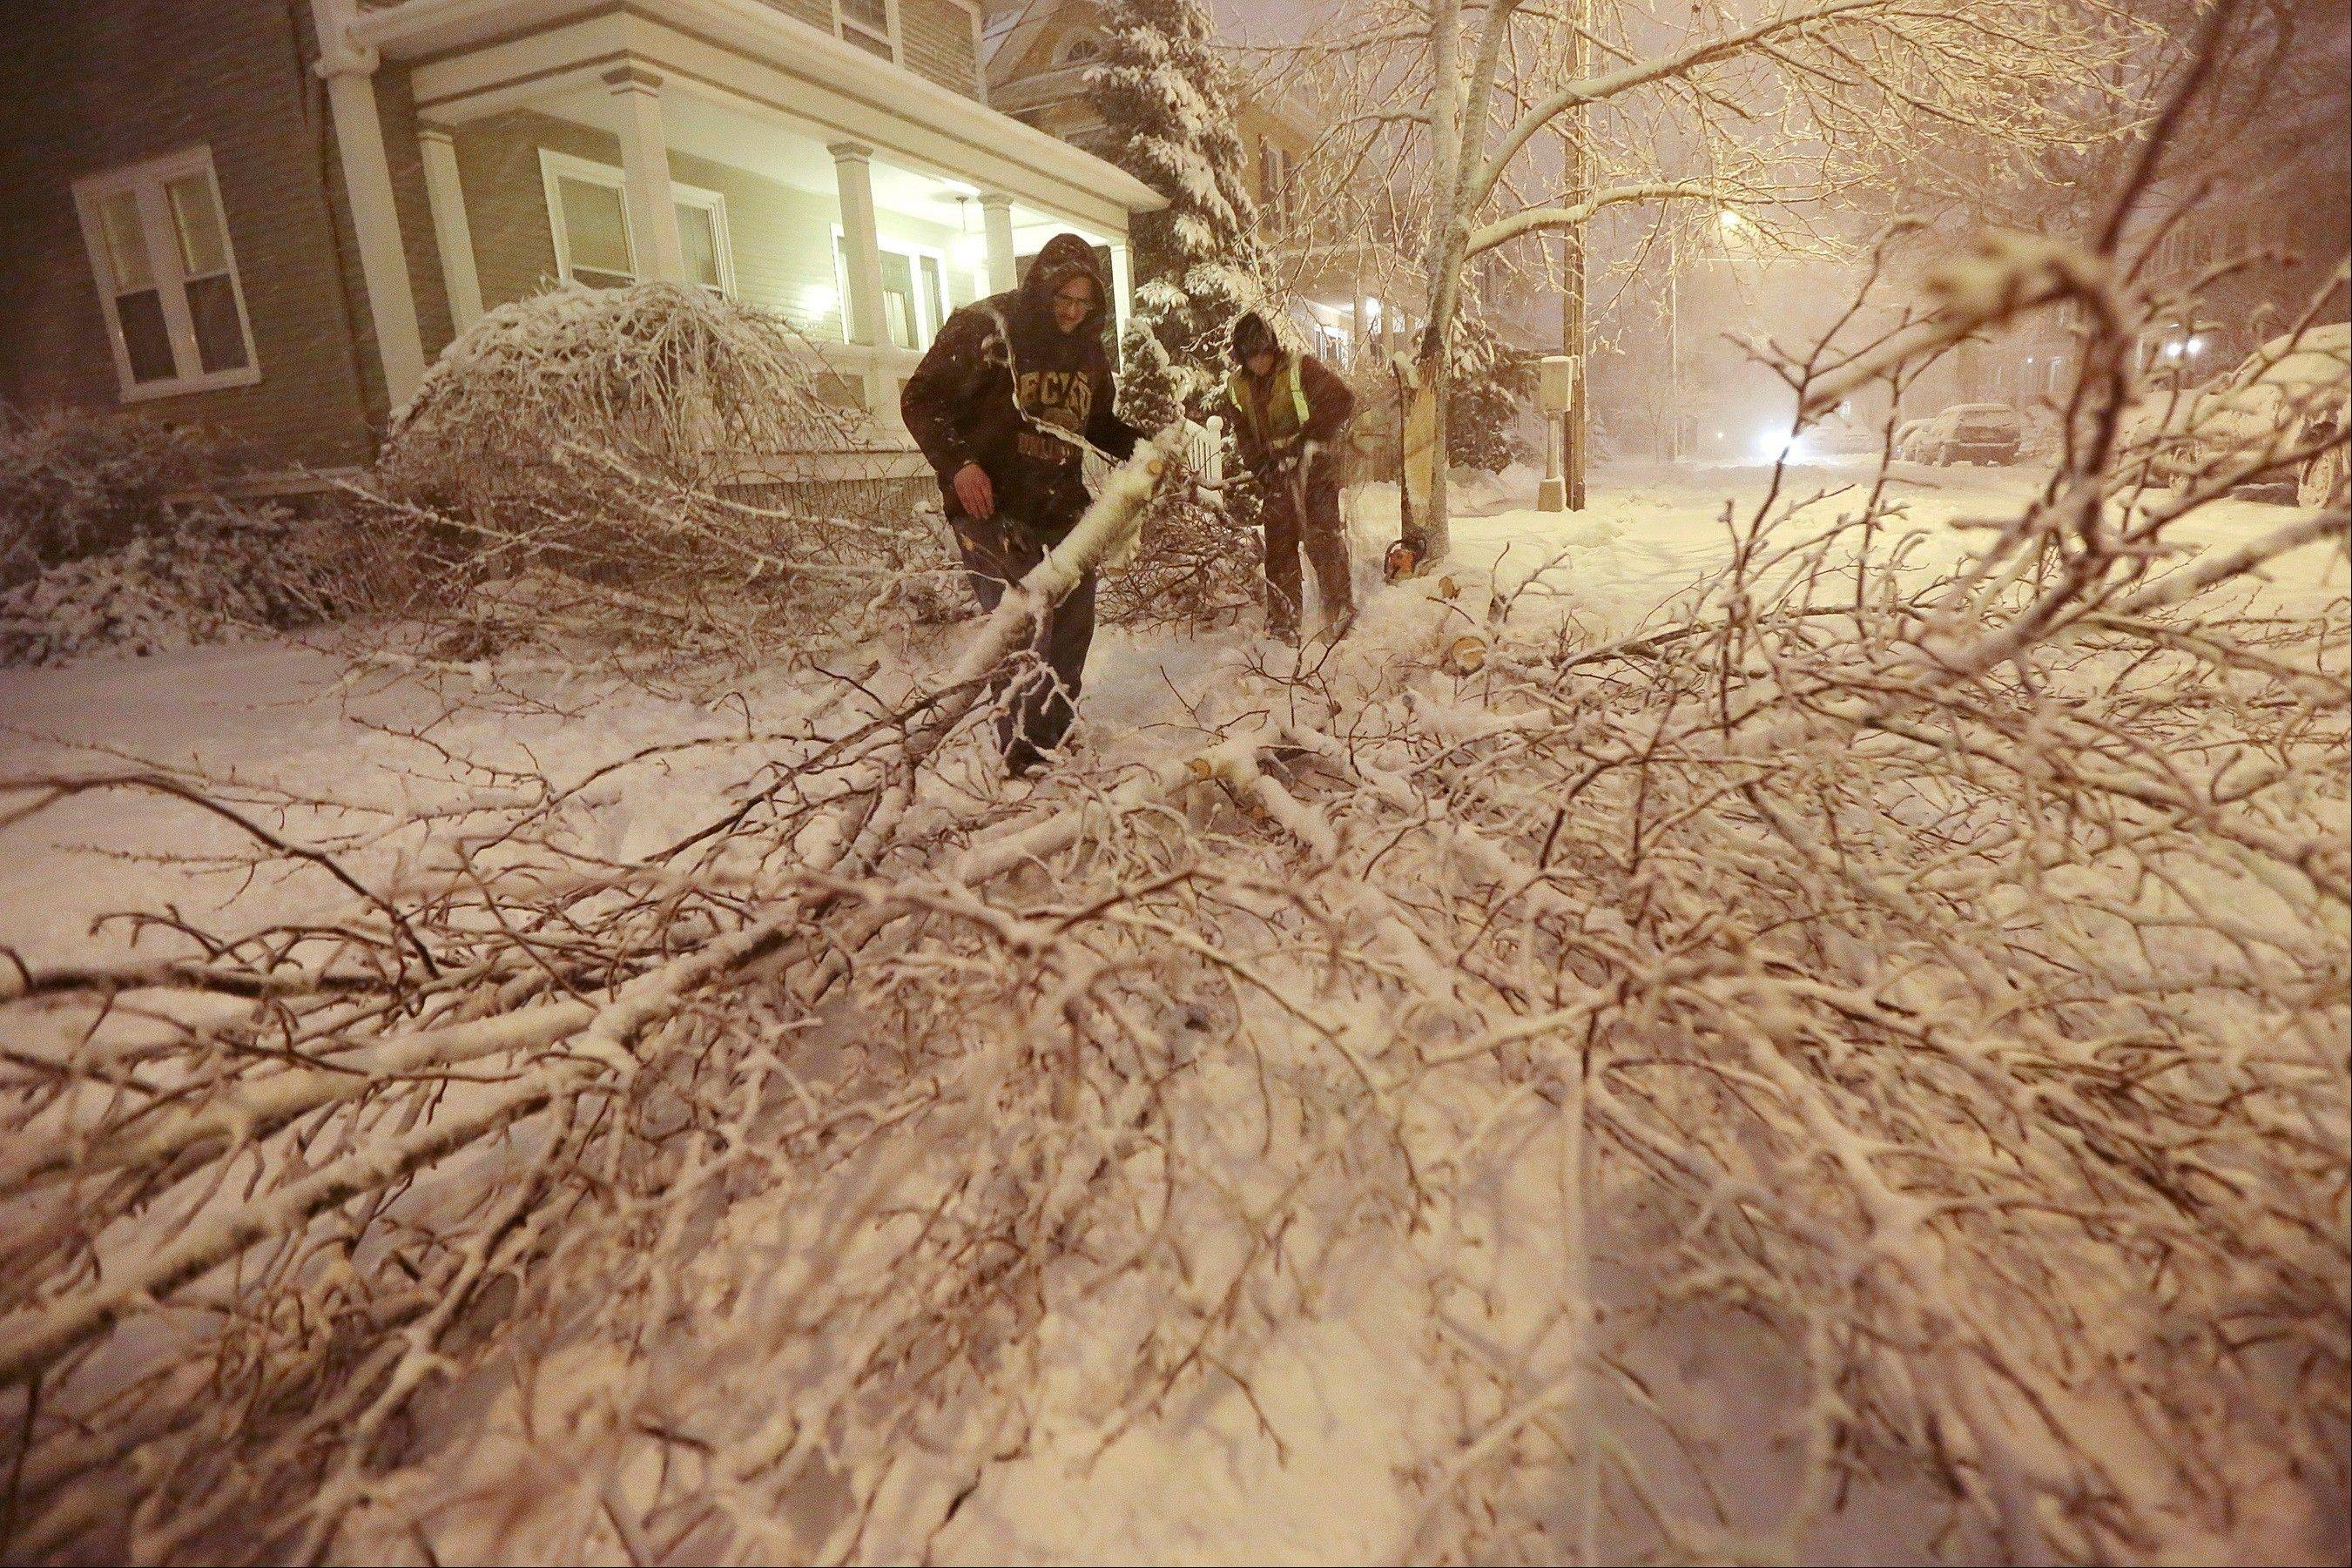 Mike Williams, left, and Louie Rodriguez of the New Bedford Forestry Department clear out a fallen tree from an intersection in New Bedford, Mass., on Friday, Feb. 8, 2013, after heavy snow and winds from a storm.